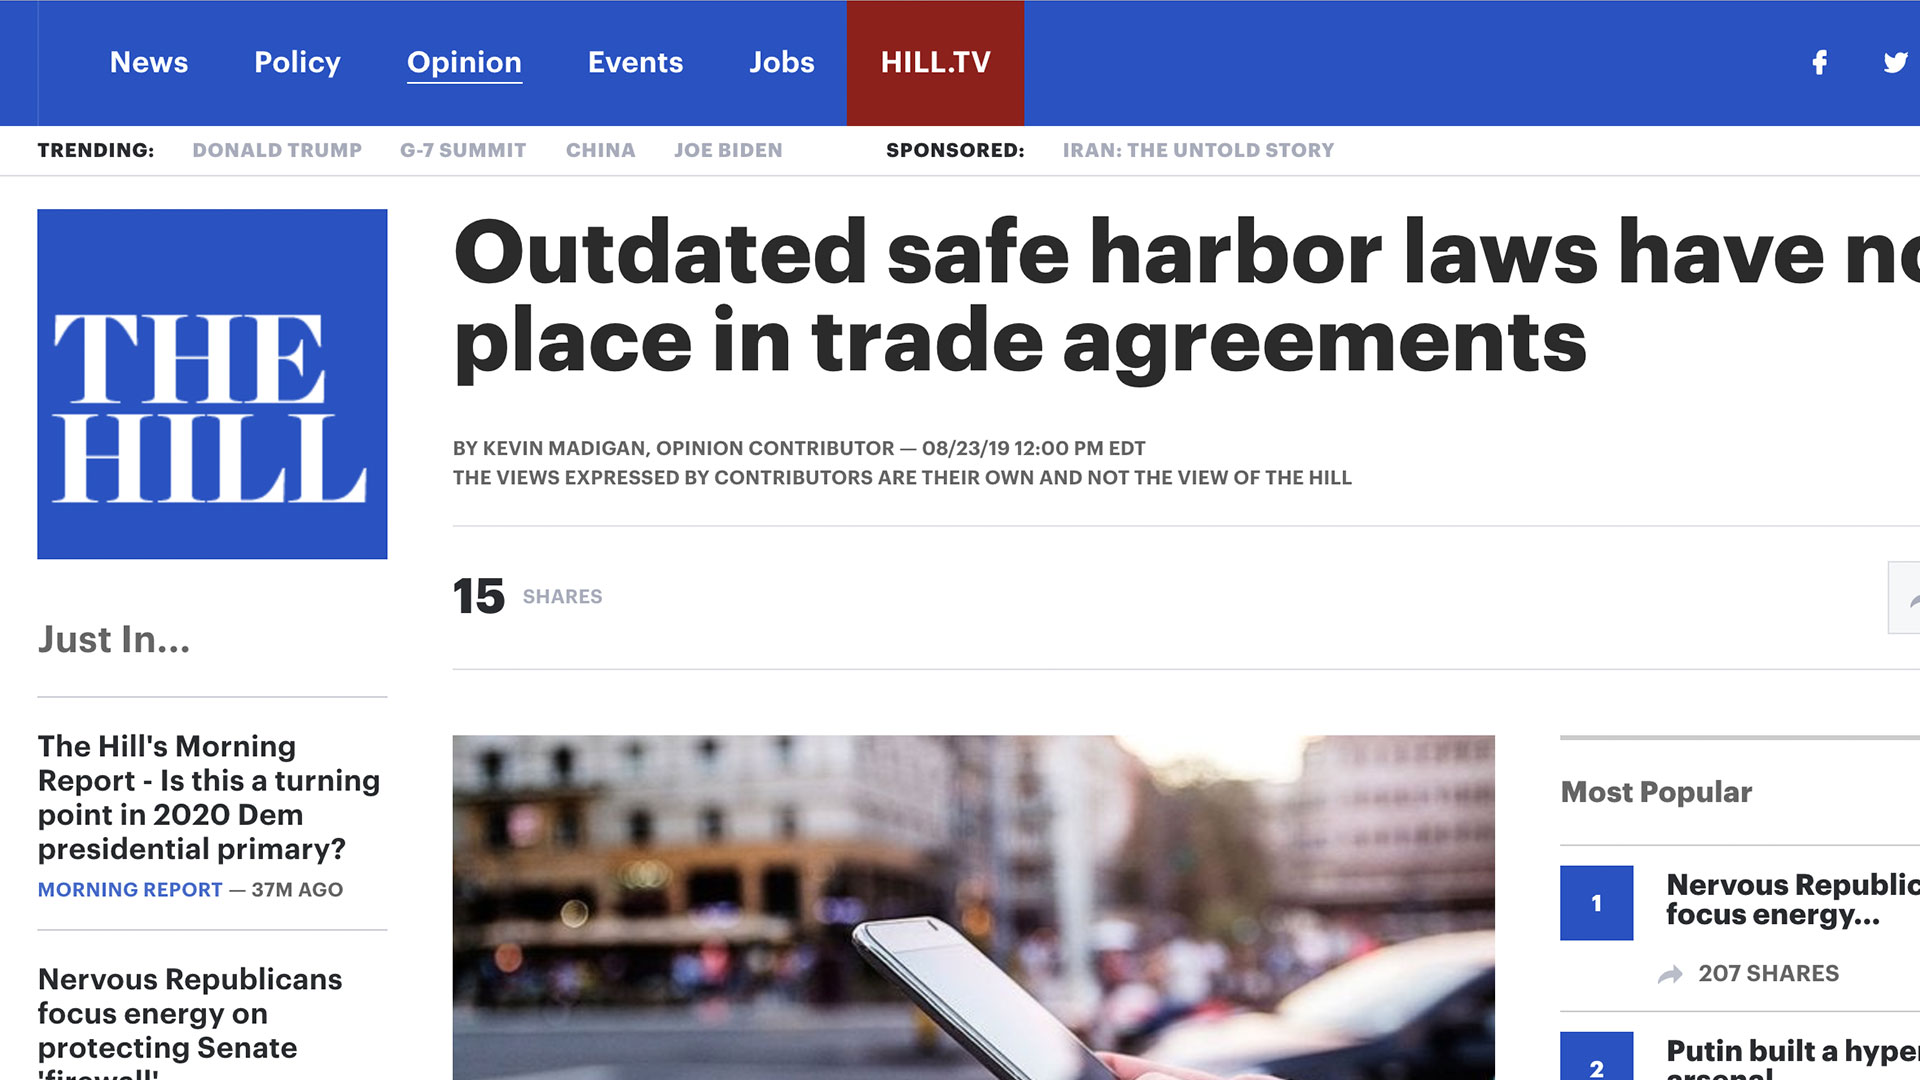 Fairness Rocks News Outdated safe harbor laws have no place in trade agreements